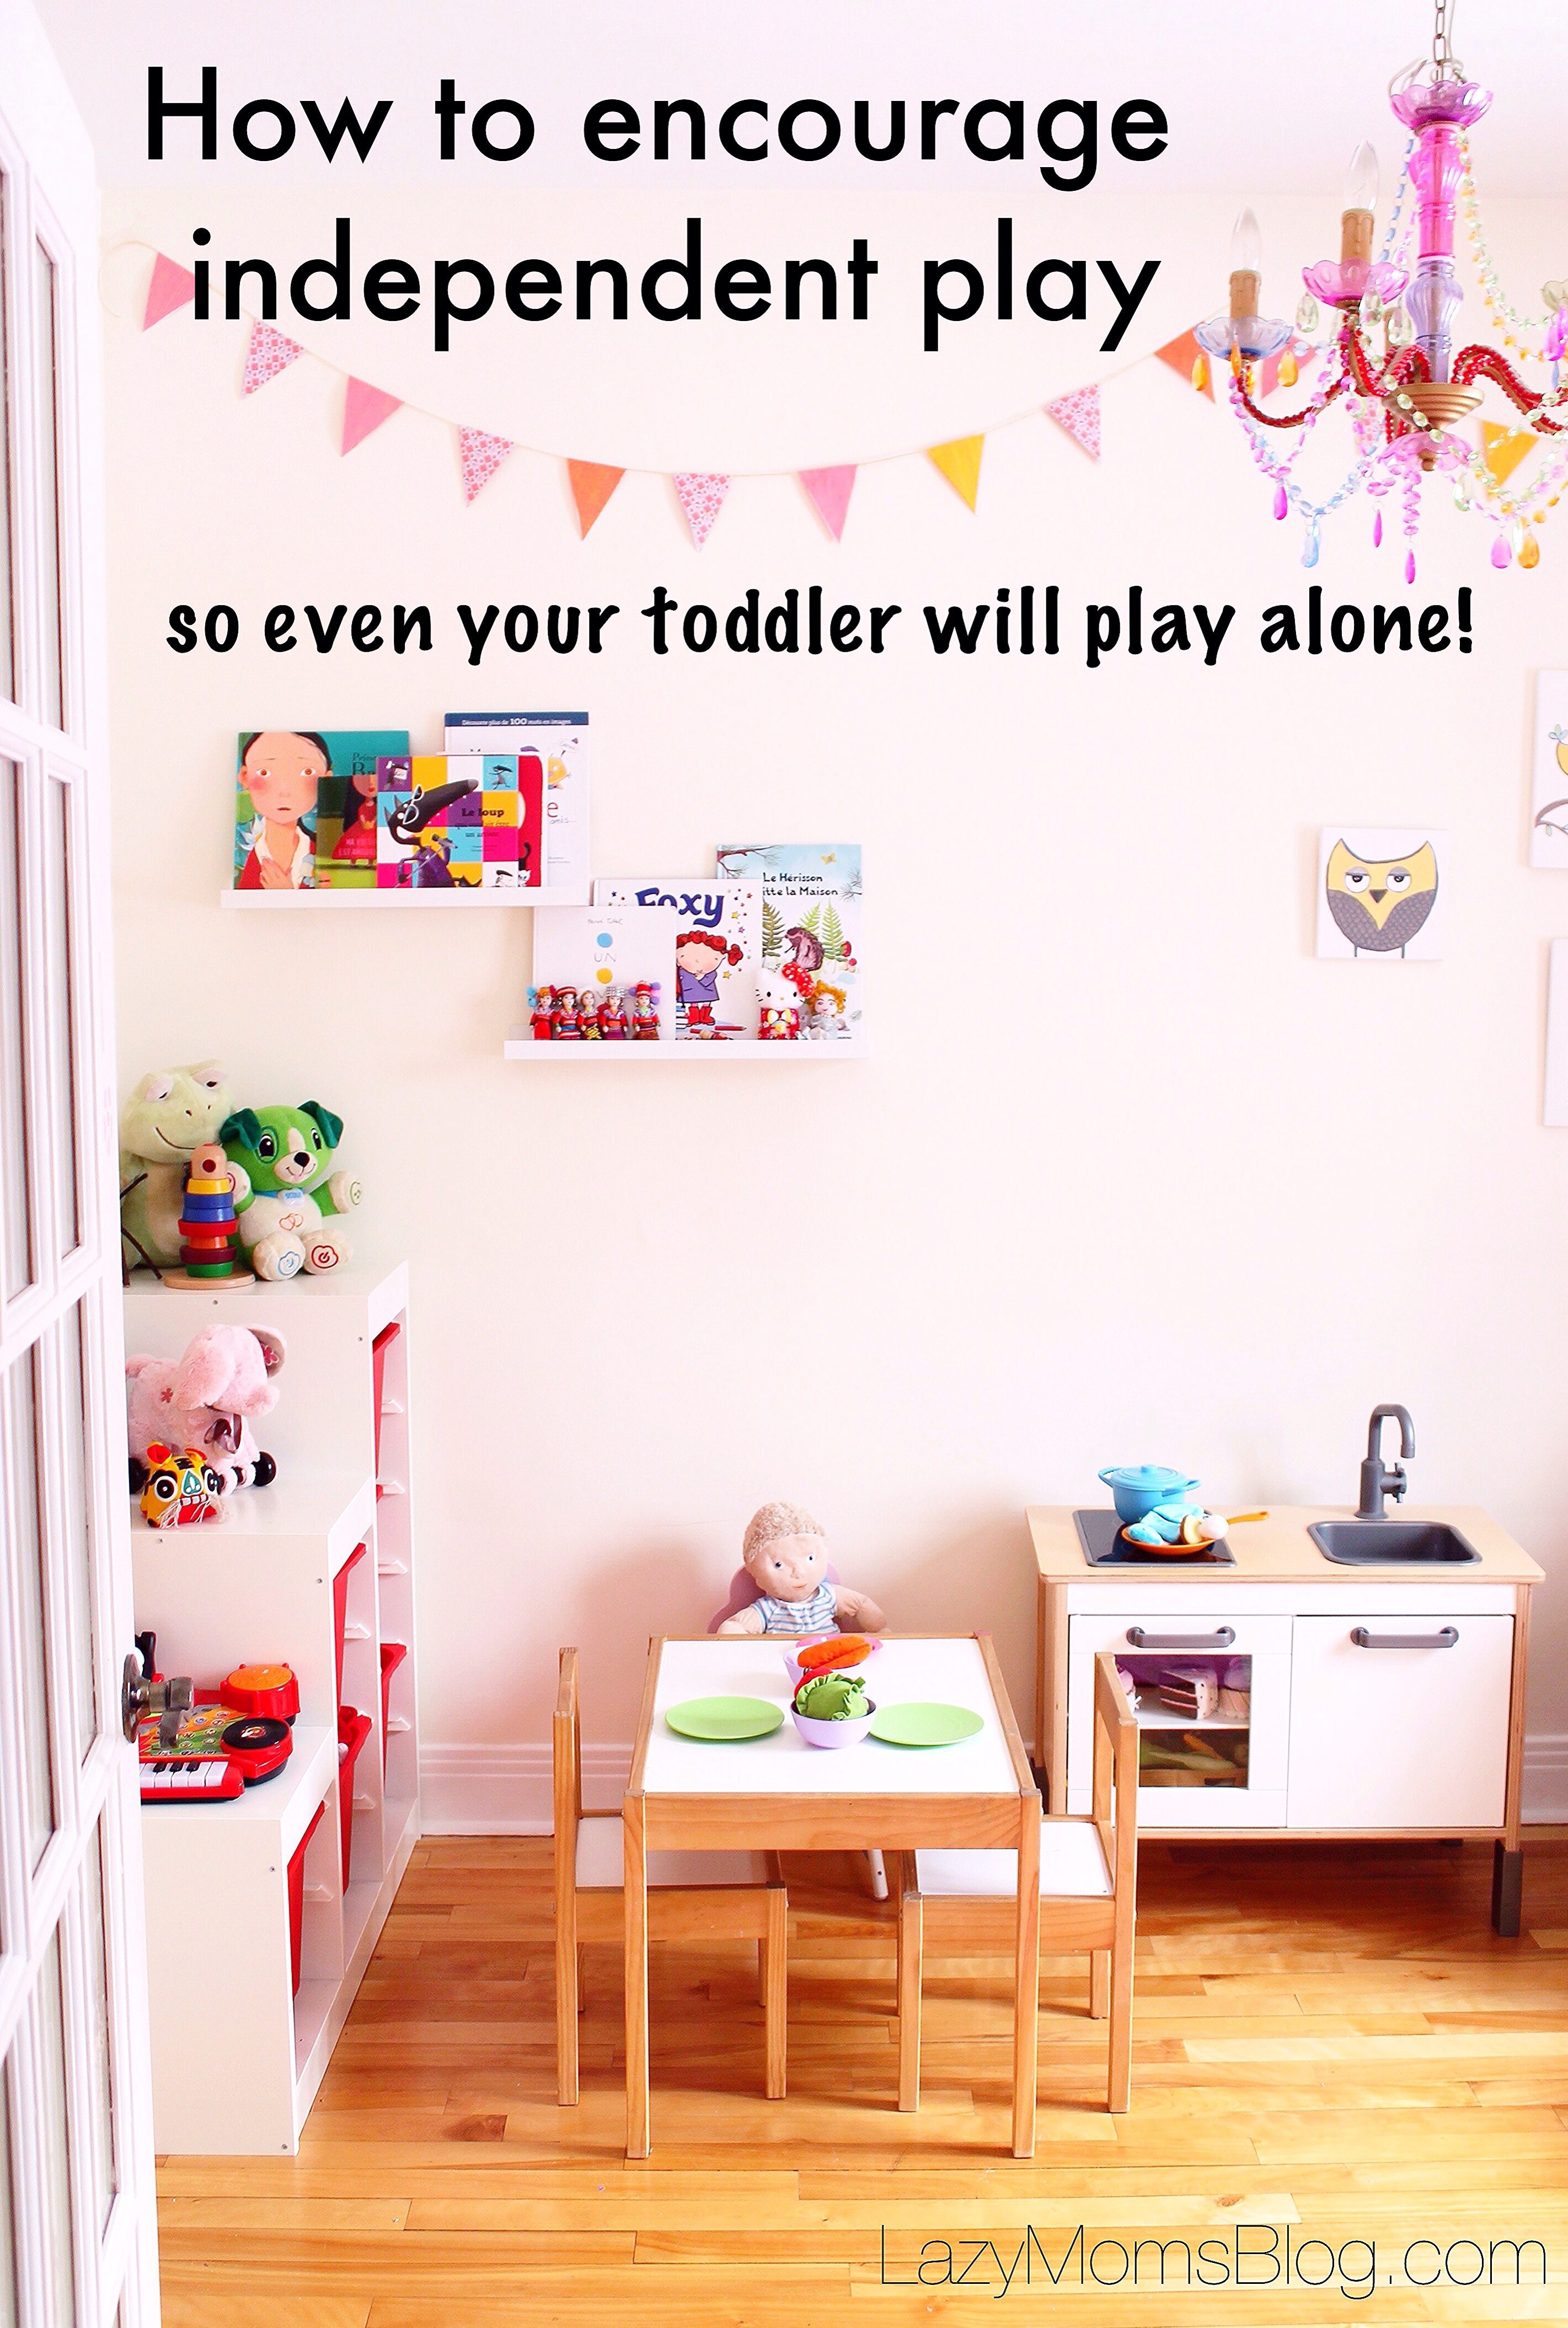 If you struggle with making dinner because your kids don't want to play alone, here are some tested tricks that can help you!